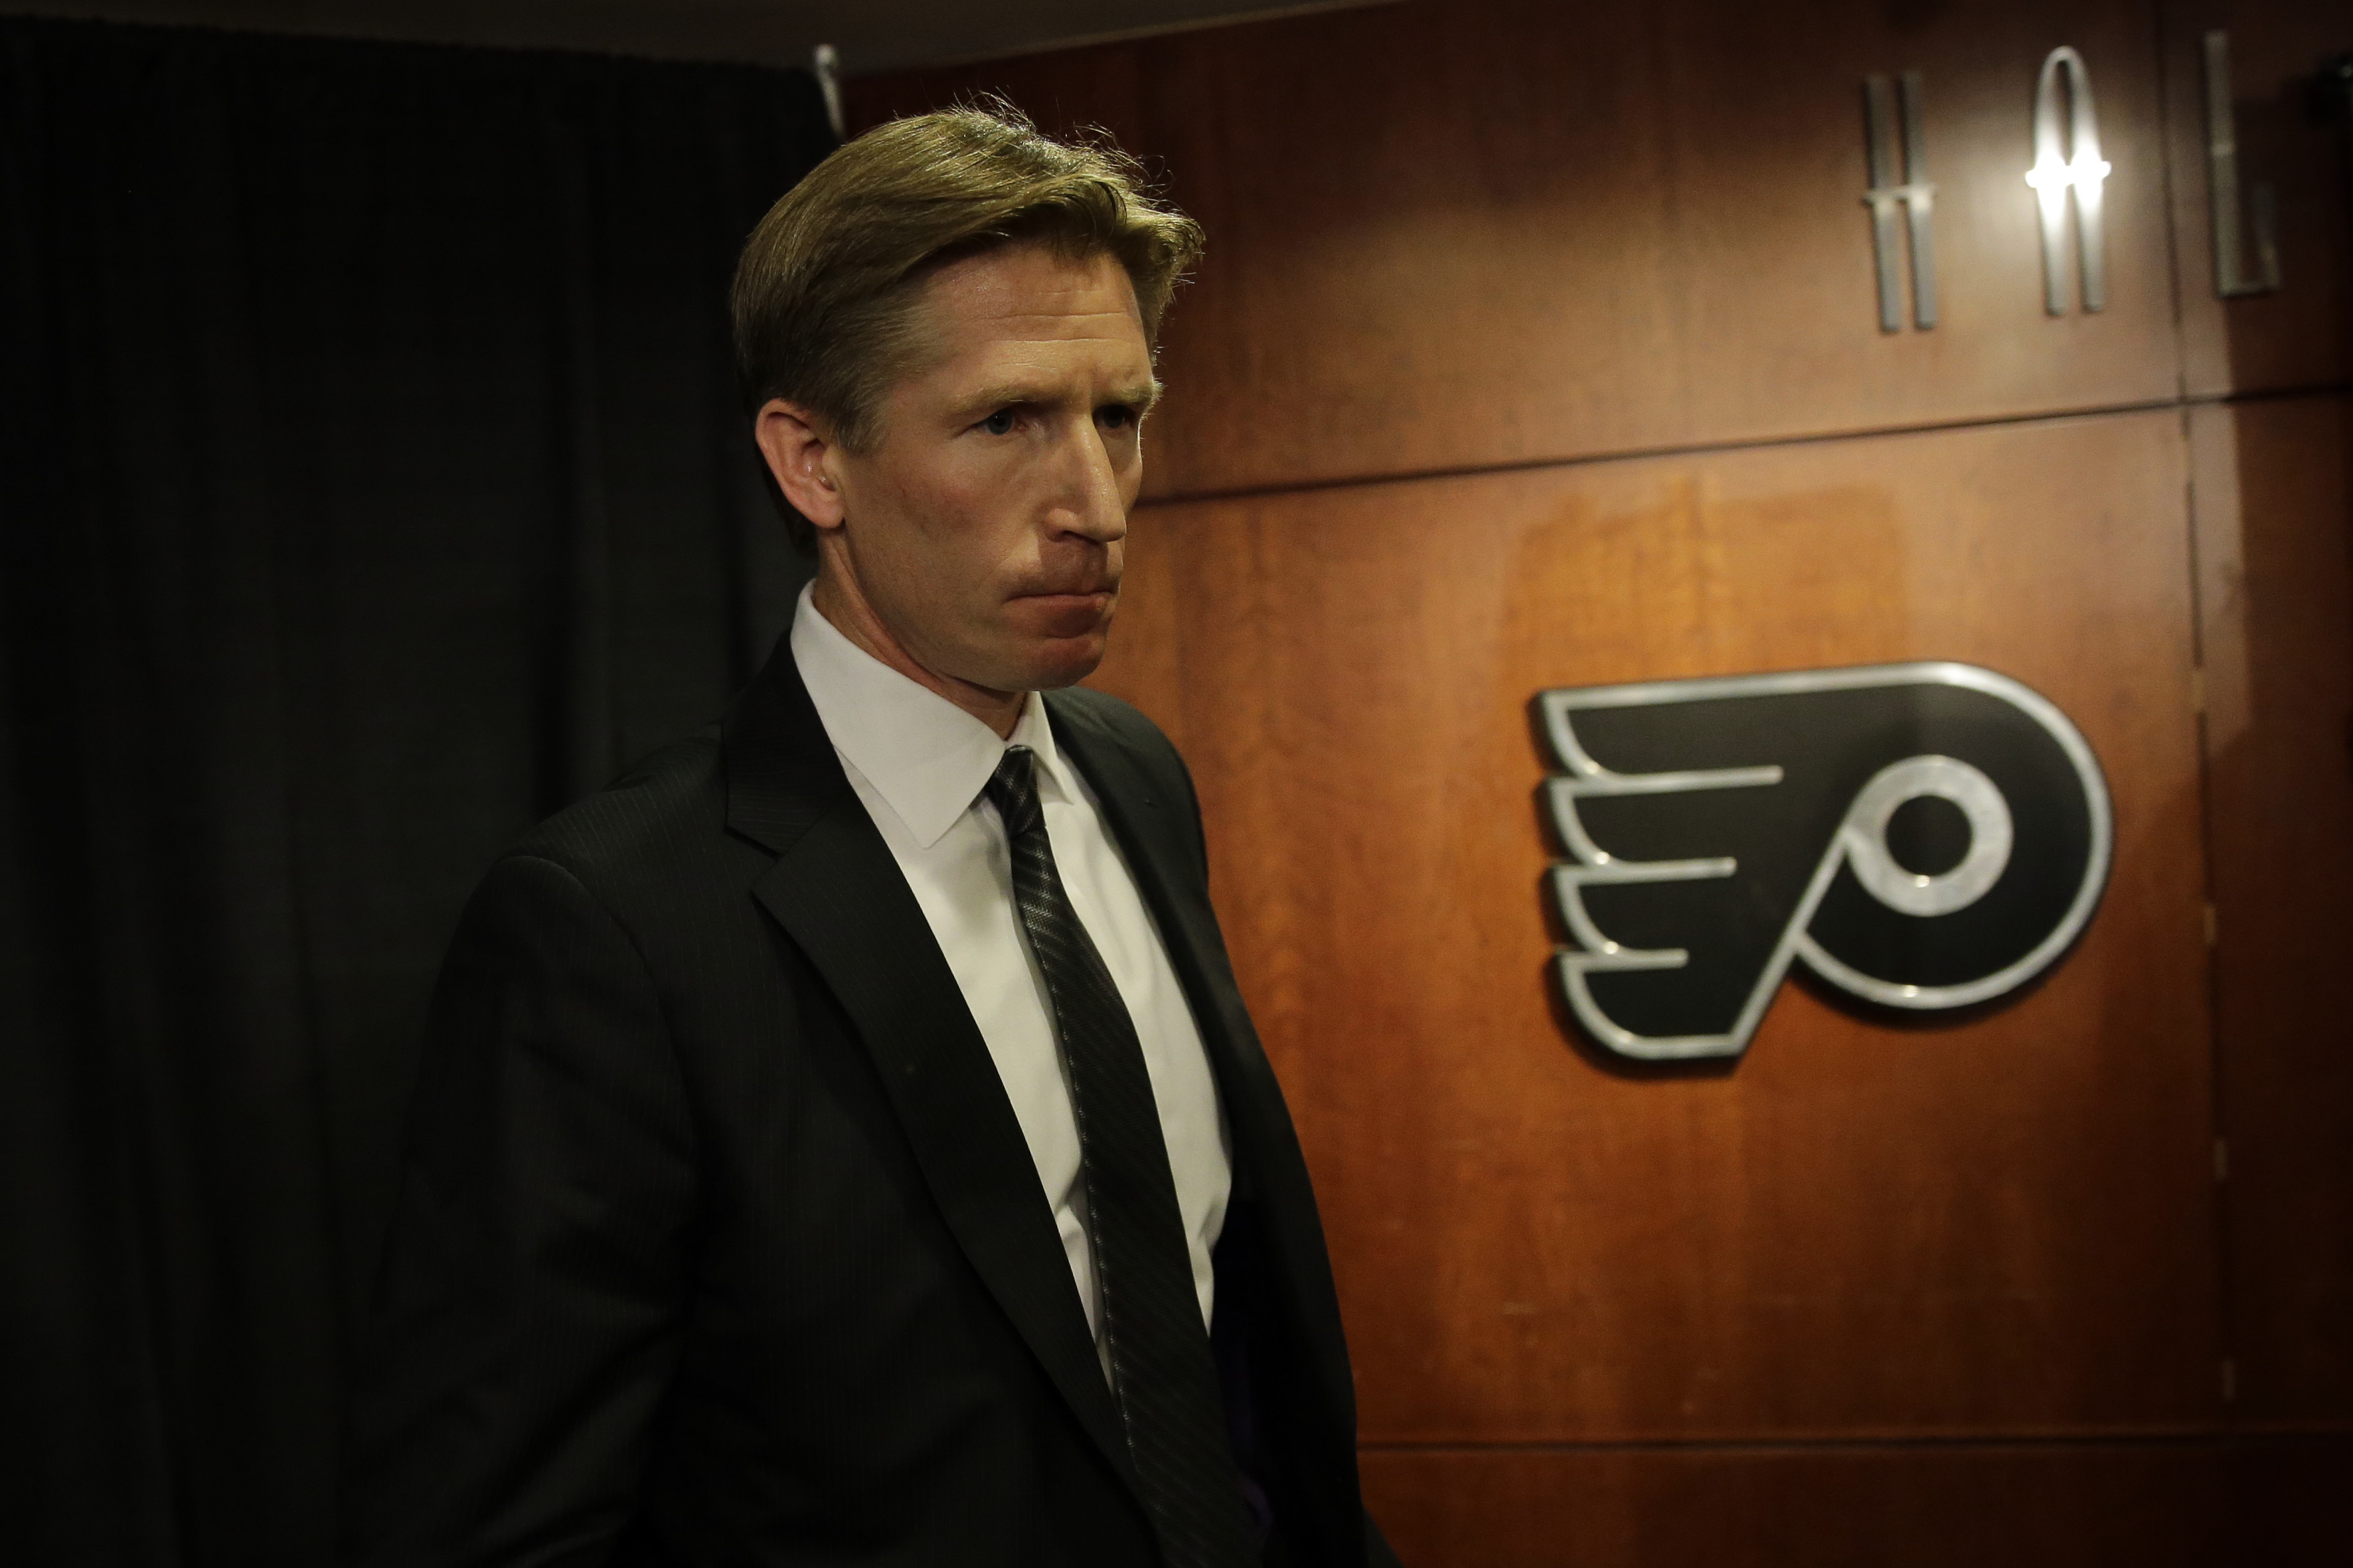 Philadelphia Flyers newly-hired head coach Dave Hakstol steps down from the stage after speaking at a news conference, Monday, May 18, 2015, in Philadelphia. (AP Photo/Matt Slocum)